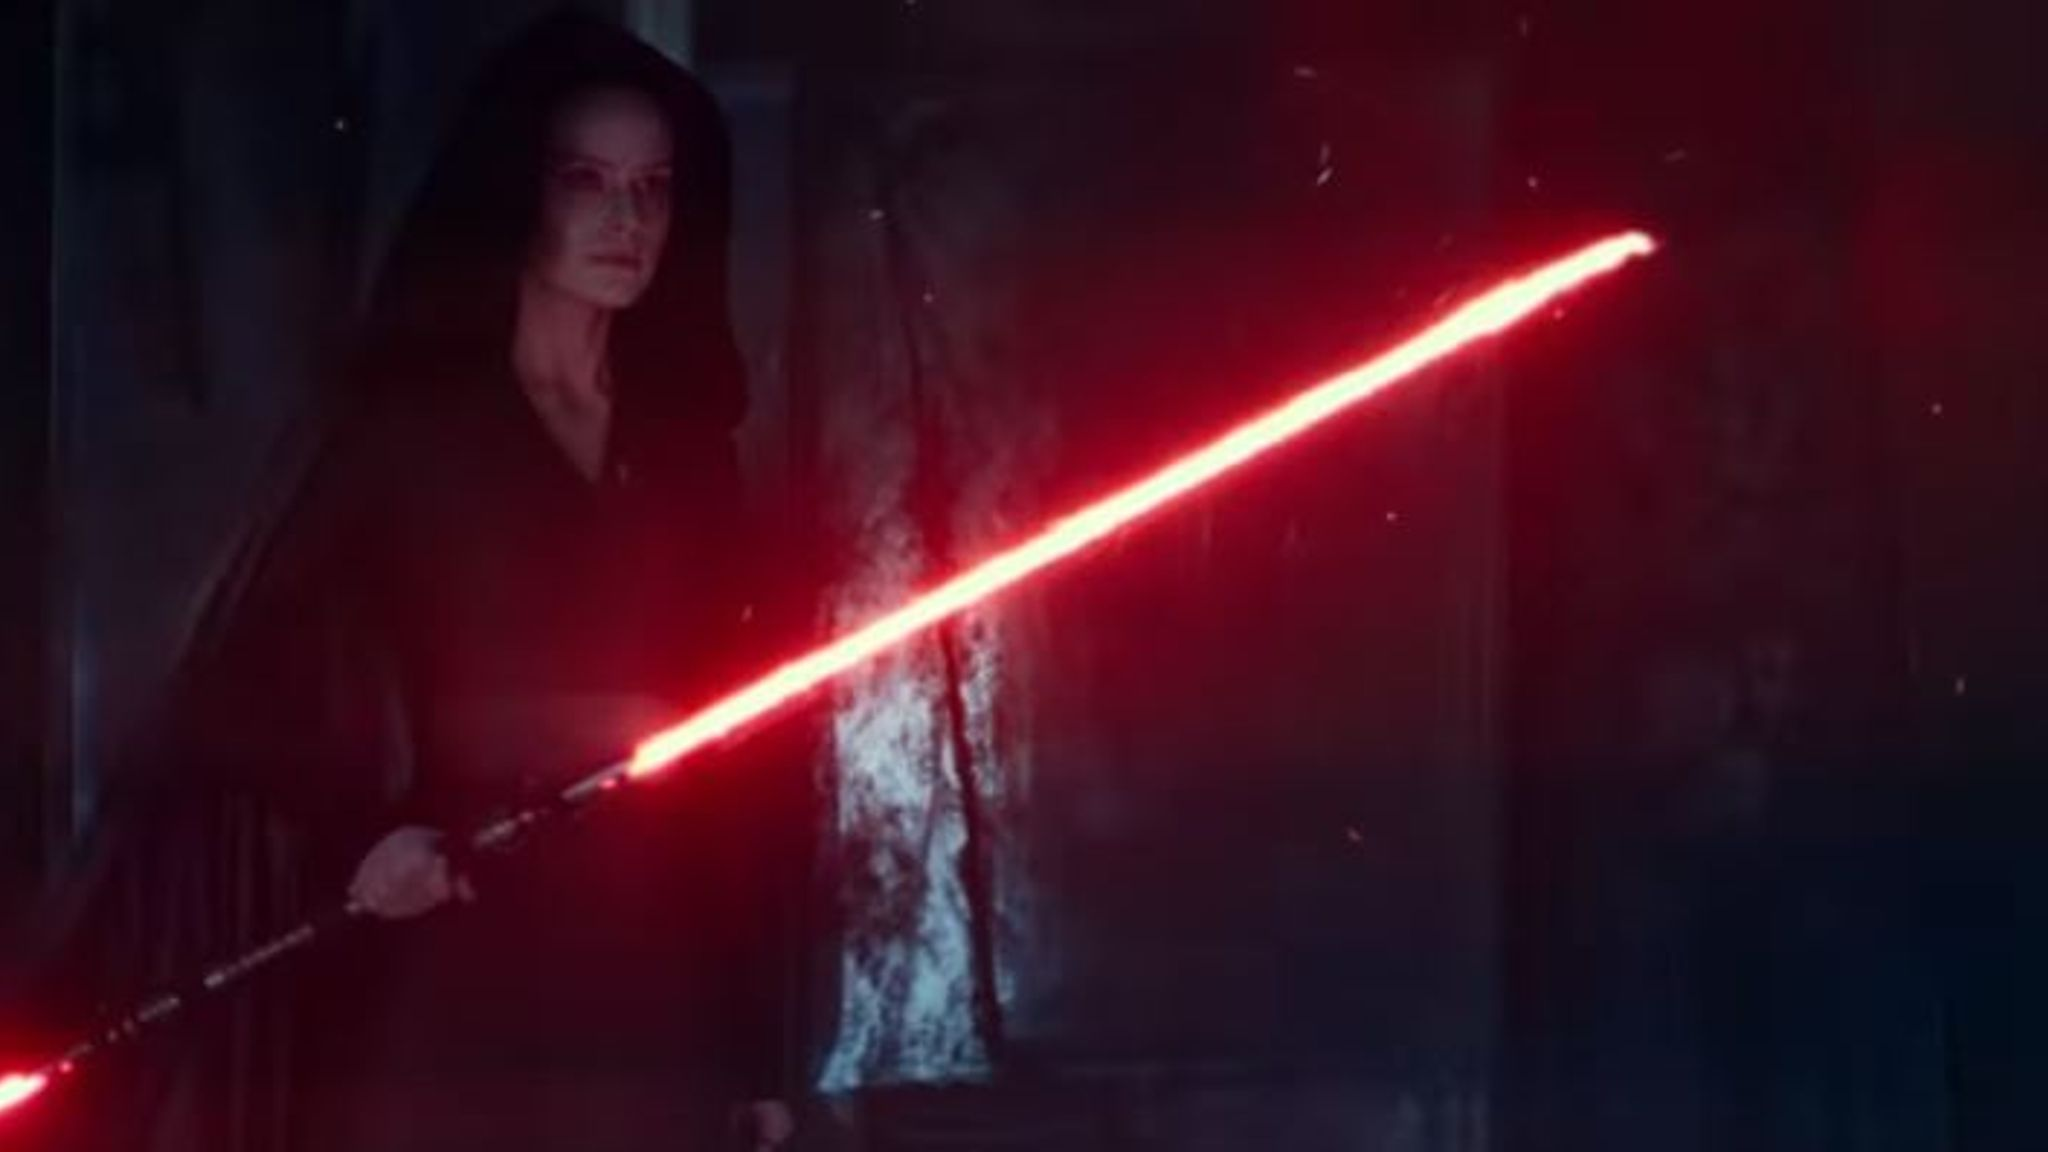 Star Wars The Rise Of Skywalker New Footage Hints At Rey S Turn To The Dark Side Ents Arts News Sky News